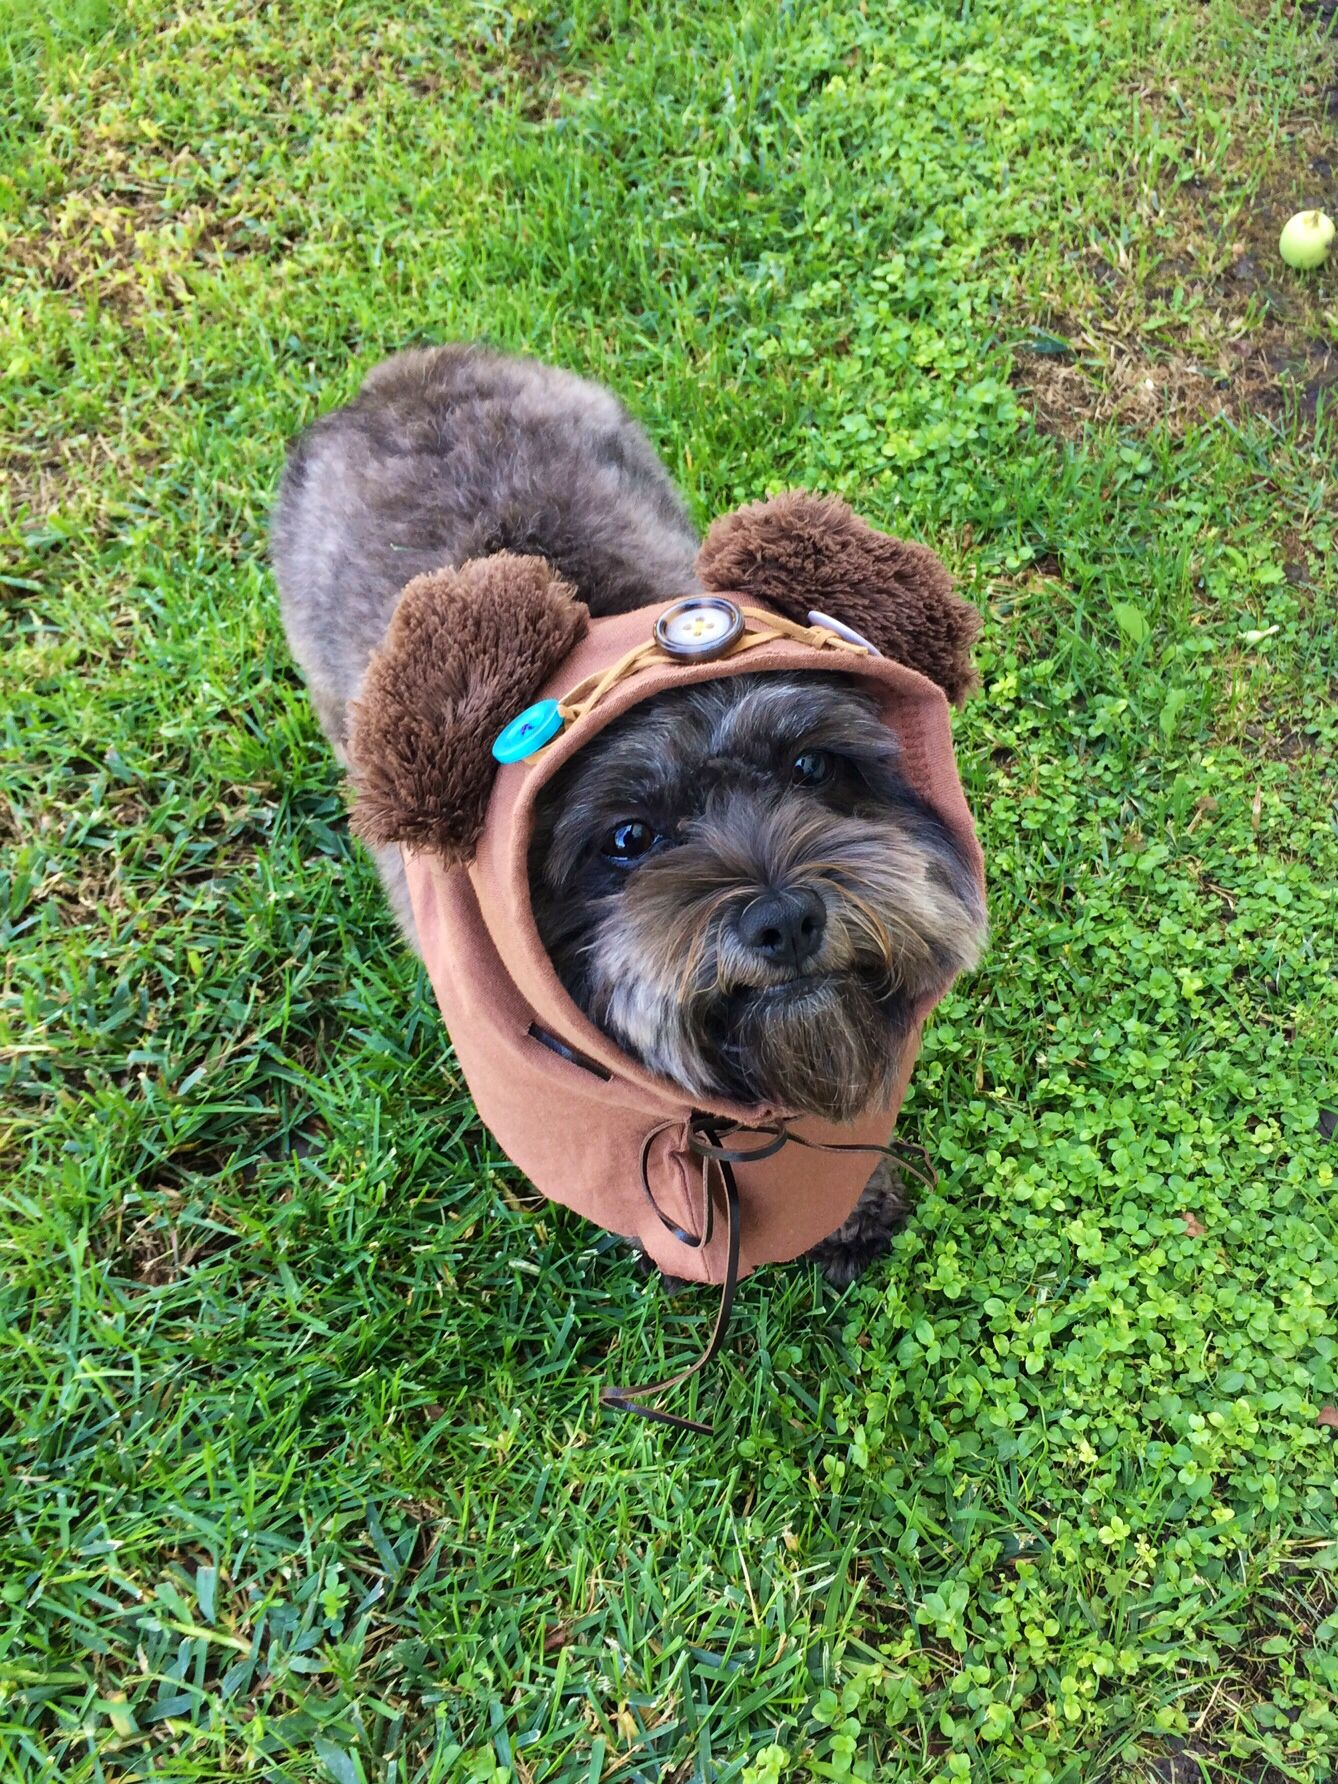 Diy dog ewok costume cut off brown t shirt sleeve and sew on ears diy dog ewok costume cut off brown t shirt sleeve and sew on ears and buttons so easy but oh so cute solutioingenieria Image collections